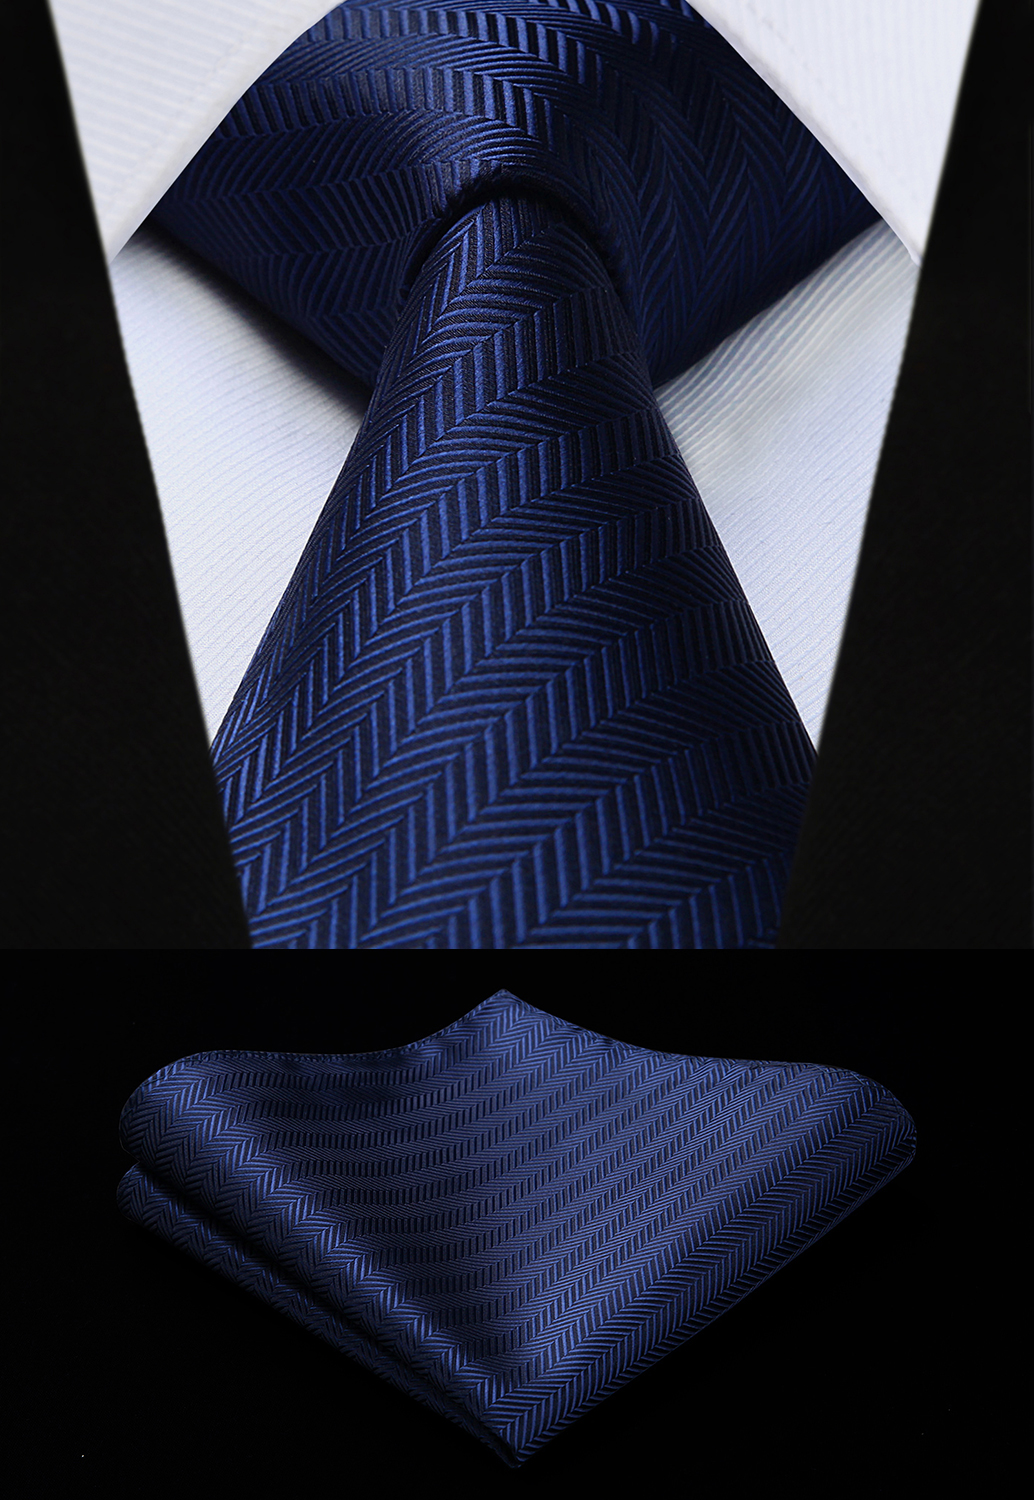 Party Wedding Classic Fashion Pocket Square Tie Woven Men Navy Blue Tie Striped Necktie Handkerchief Set#TS723V8S